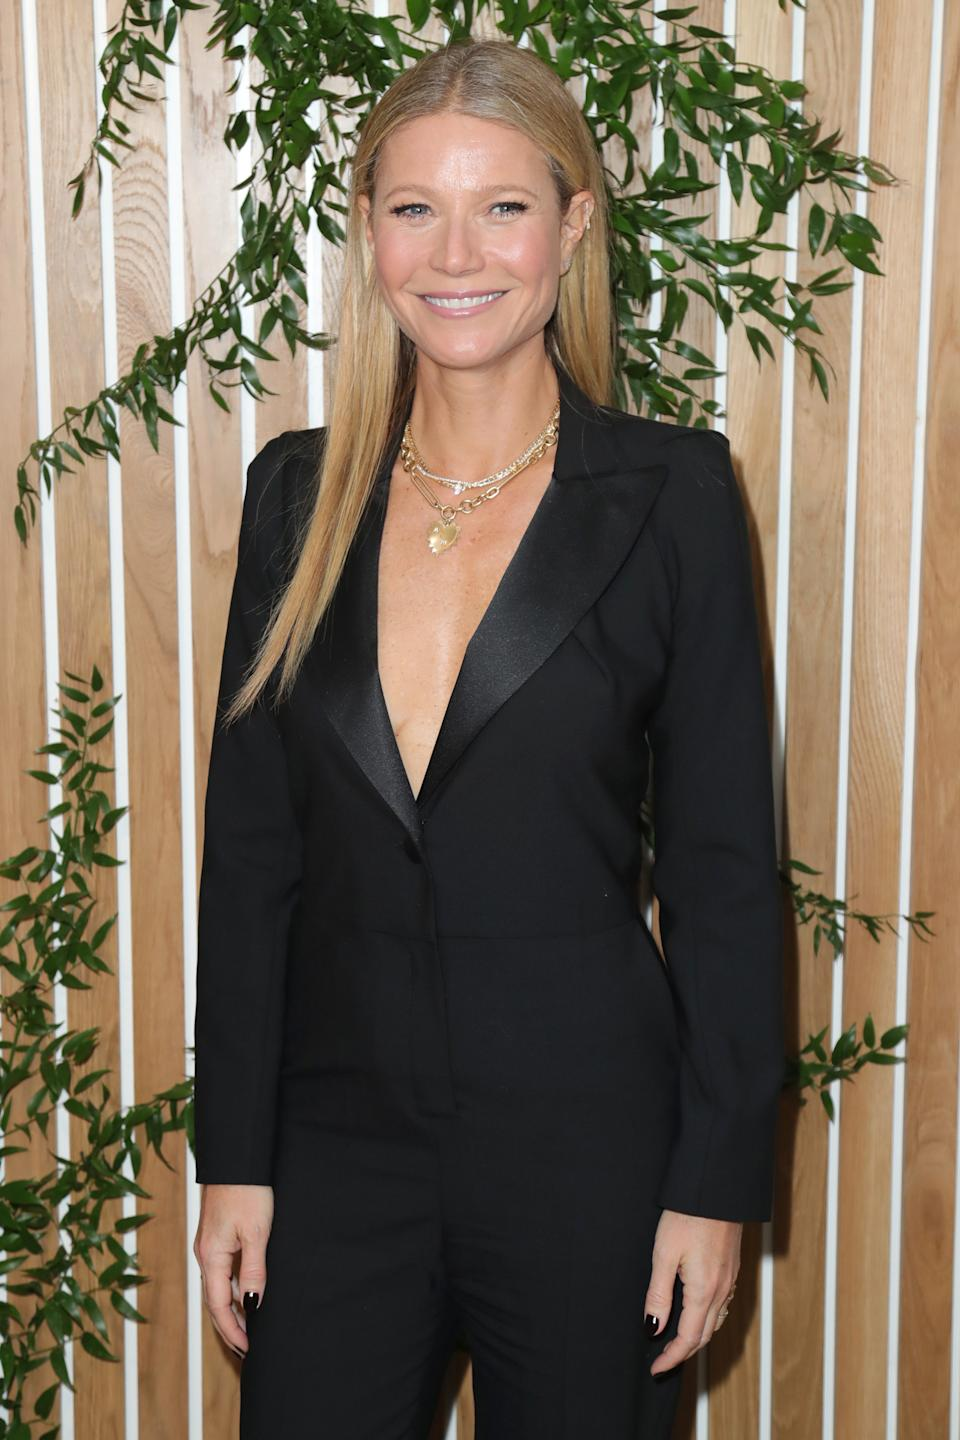 WEST HOLLYWOOD, CALIFORNIA - NOVEMBER 05: Gwyneth Paltrow attends 1 Hotel West Hollywood Grand Opening Event at 1 Hotel West Hollywood on November 05, 2019 in West Hollywood, California. (Photo by Leon Bennett/Getty Images)